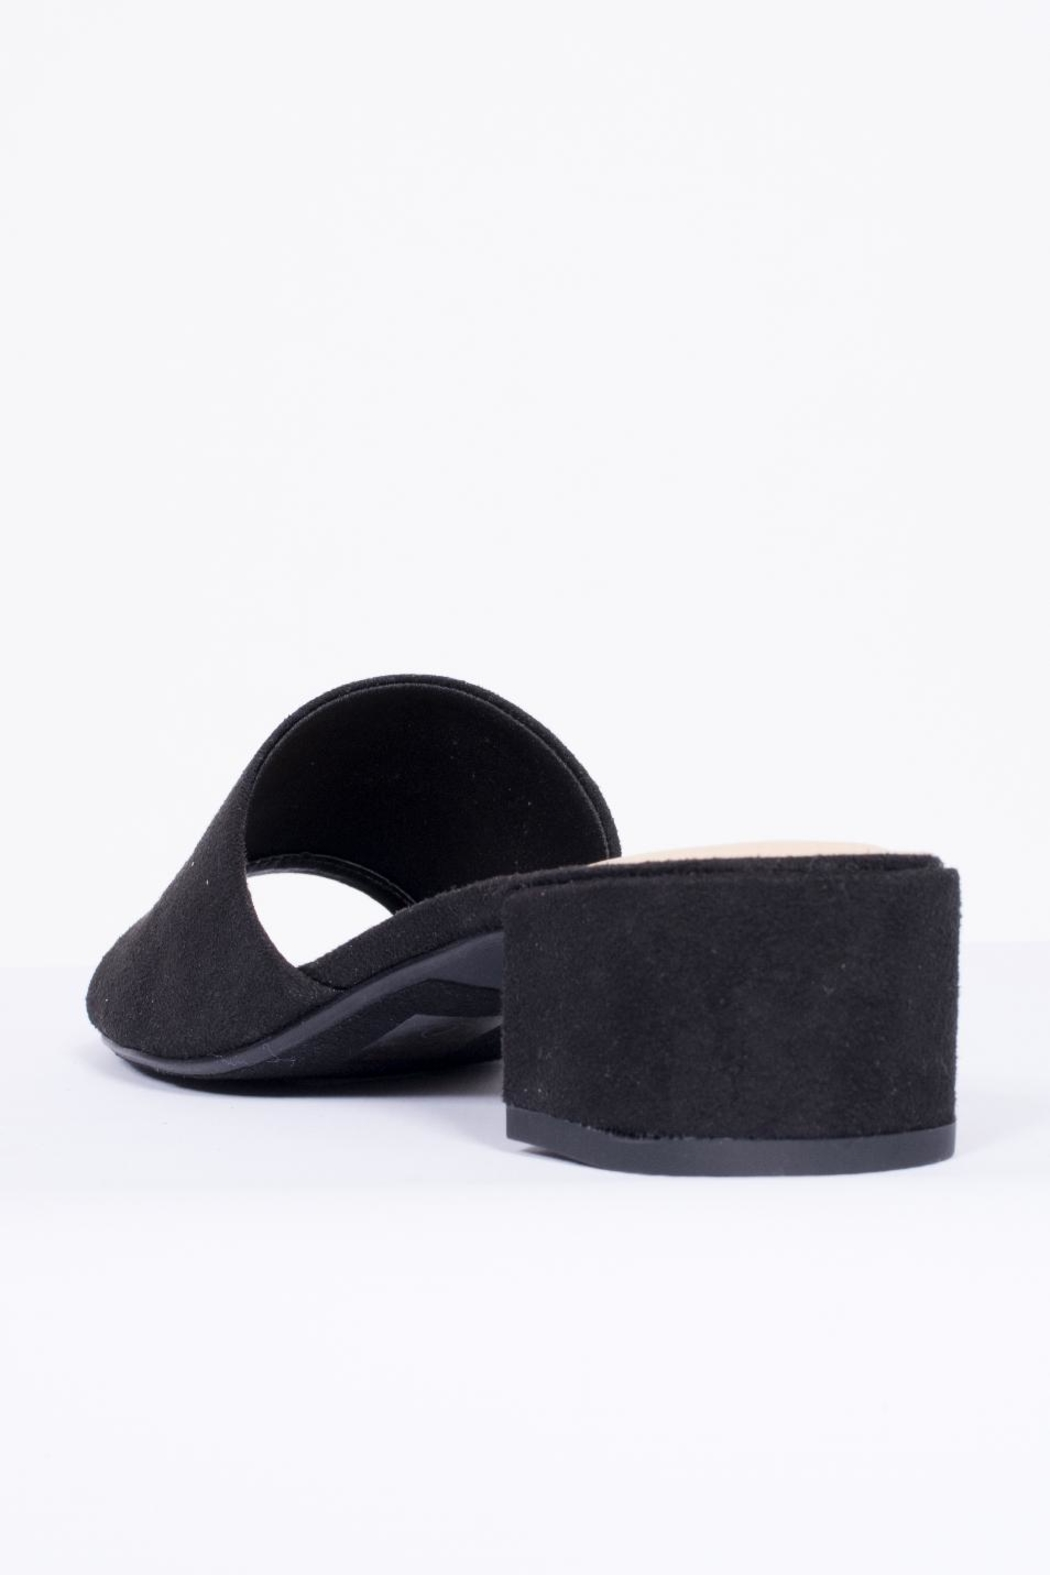 City Classified Black Suede Mule Shoes - Back Cropped Image